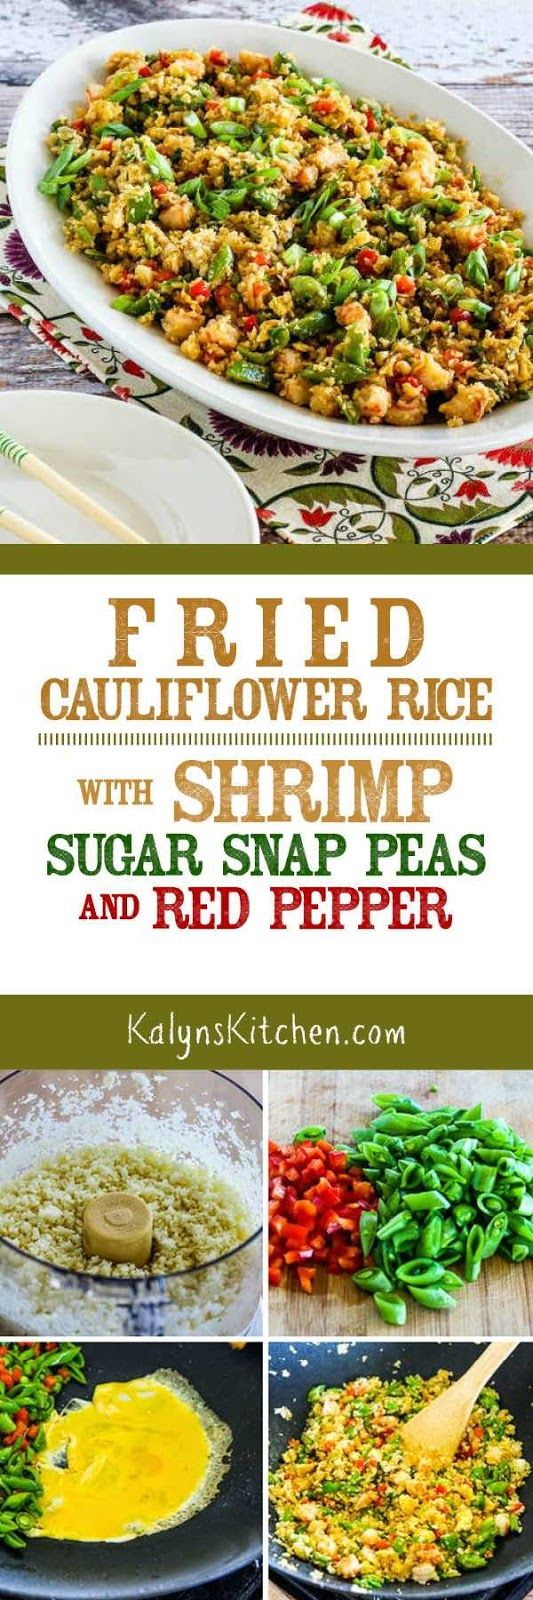 If you love fried rice but don't want the carbs, you'll love this Fried Cauliflower Rice with Shrimp, Sugar Snap Peas, and Red Pepper. This delicious faux fried rice is low-carb, and it can easily be gluten-free or Paleo with the right ingredient choices.  [found on KalynsKitchen.com]